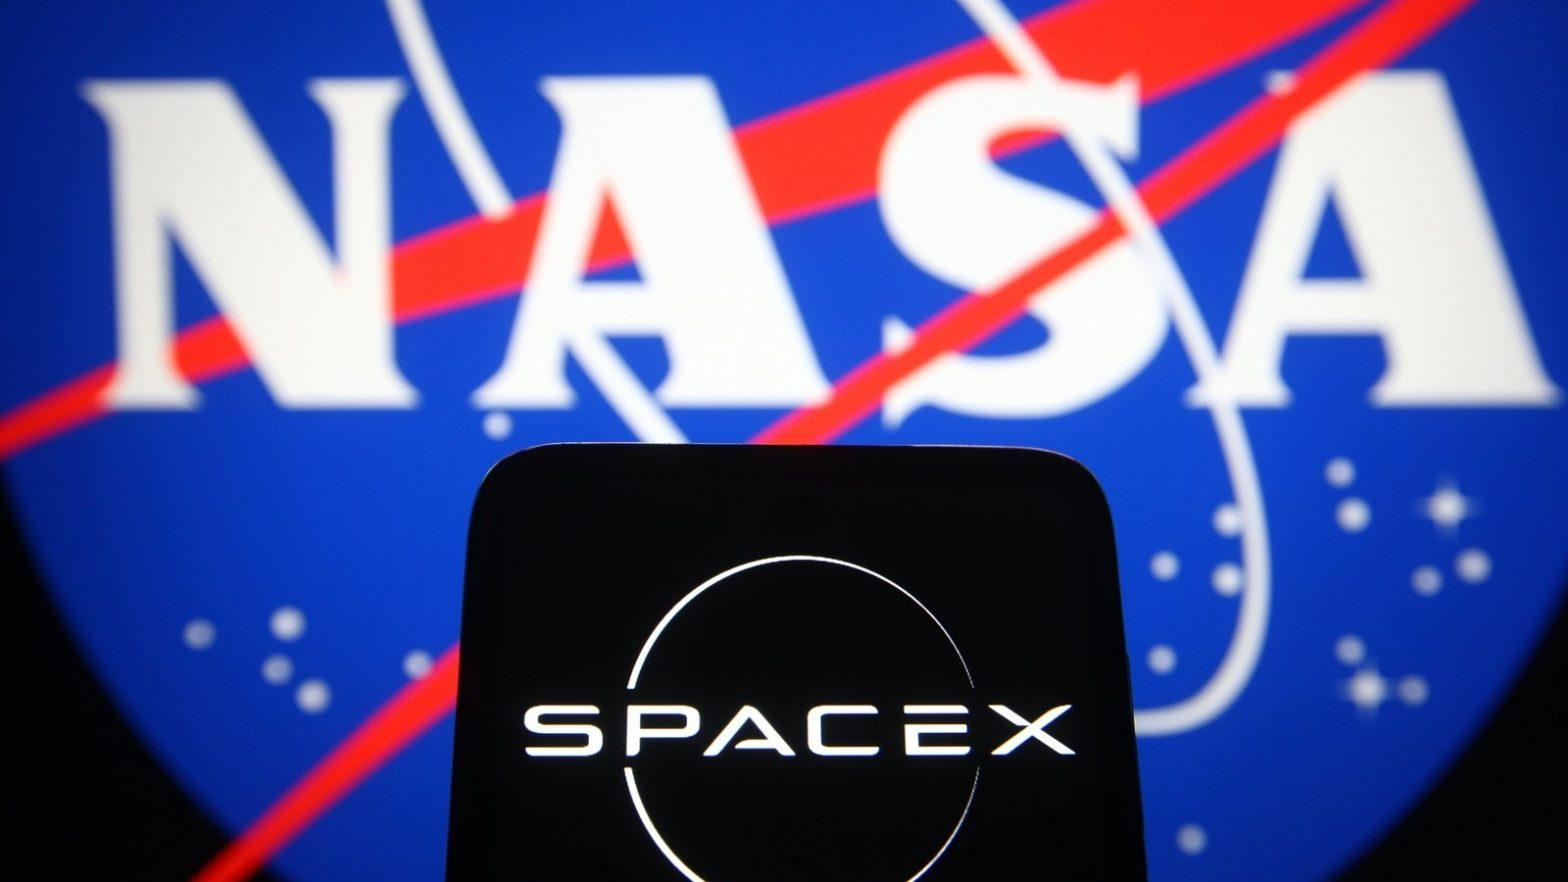 NASA selects SpaceX for Europa mission_40.1